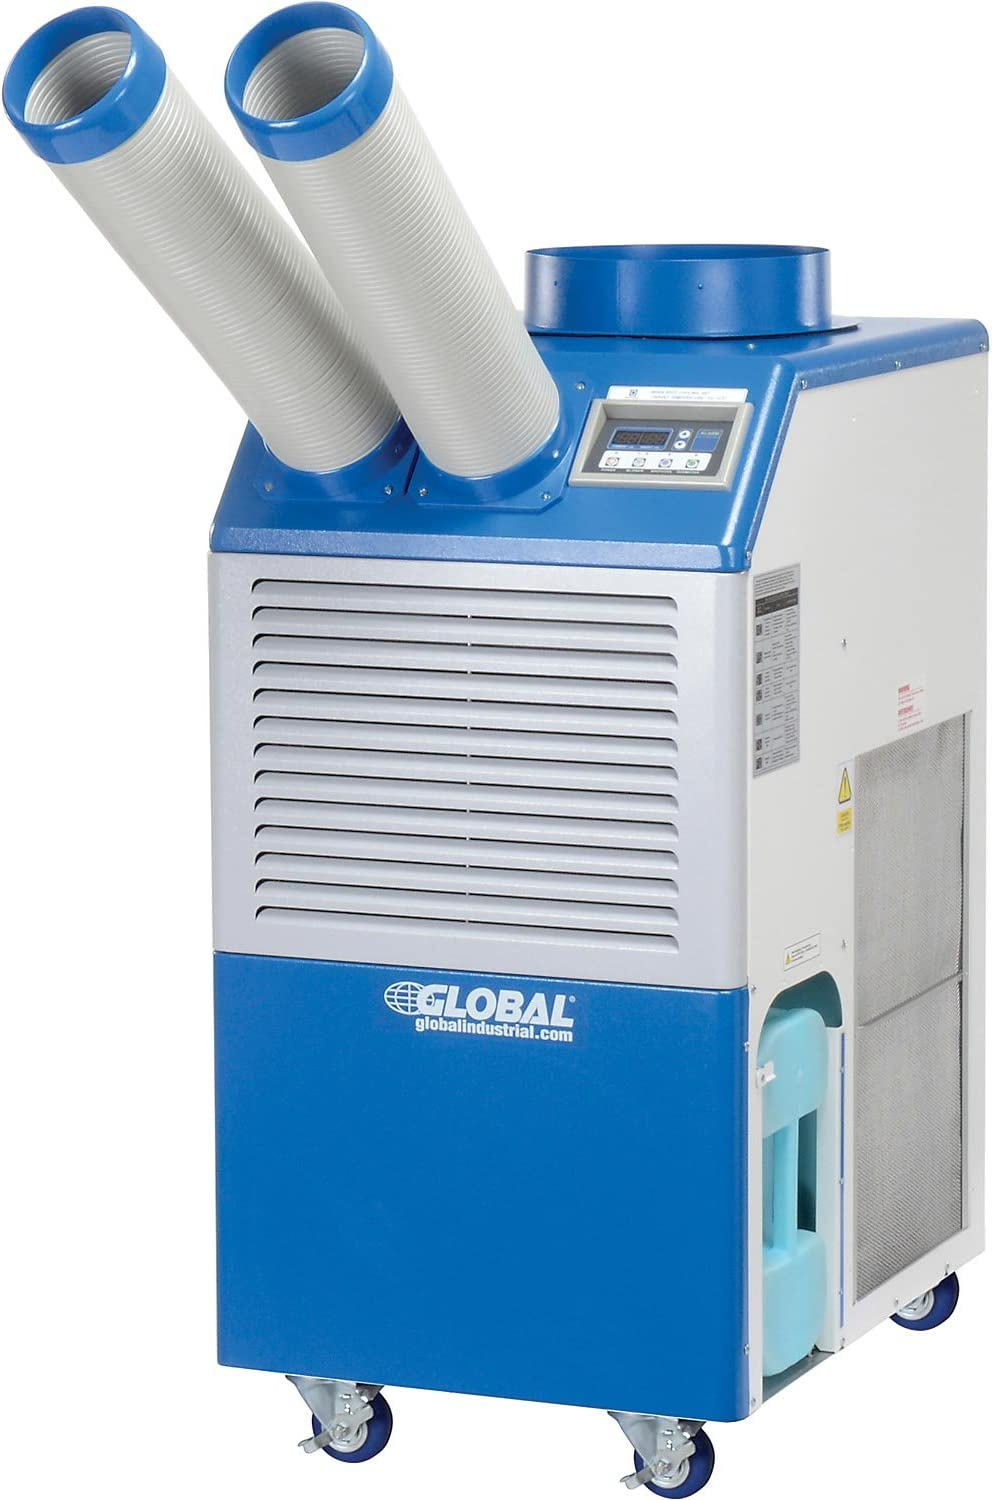 Industrial Portable AC 1.5 Ton w 100% quality warranty In stock Cold 1 Air 800 16 Nozzles BTU